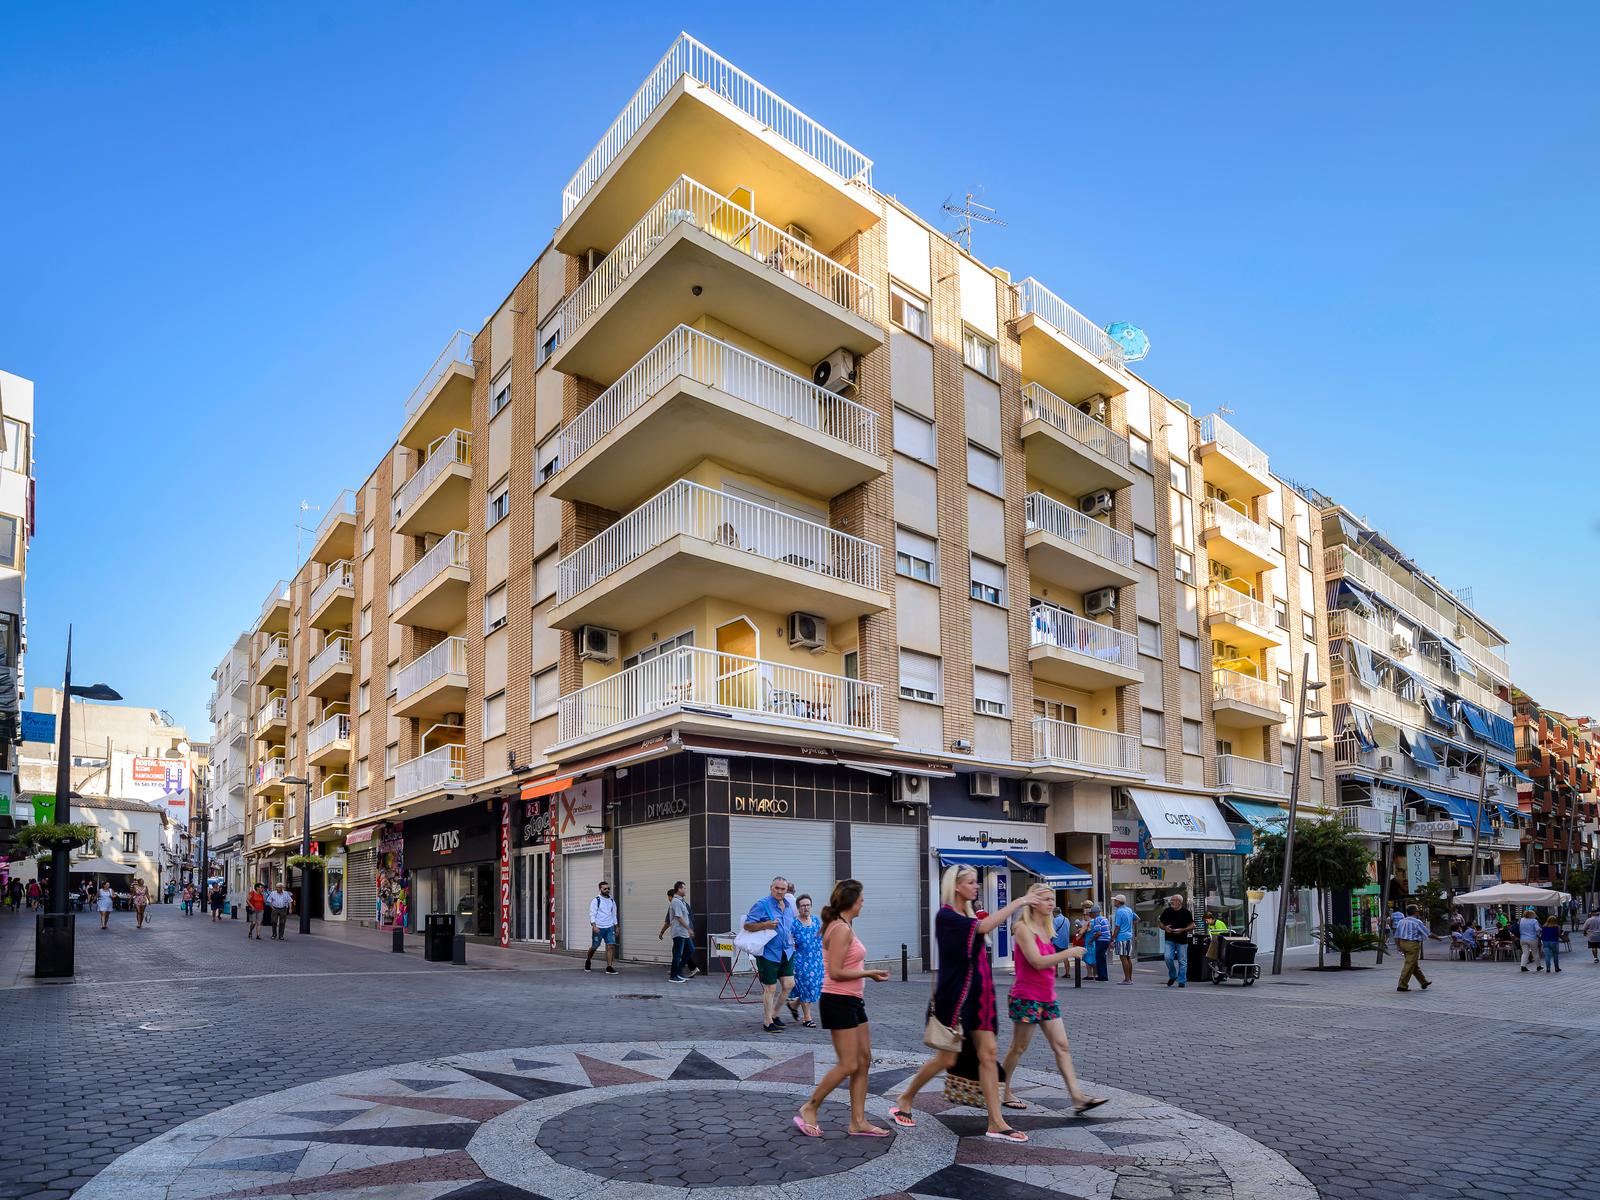 Avenida Apartments in Benidorm, Costa Blanca, Spain